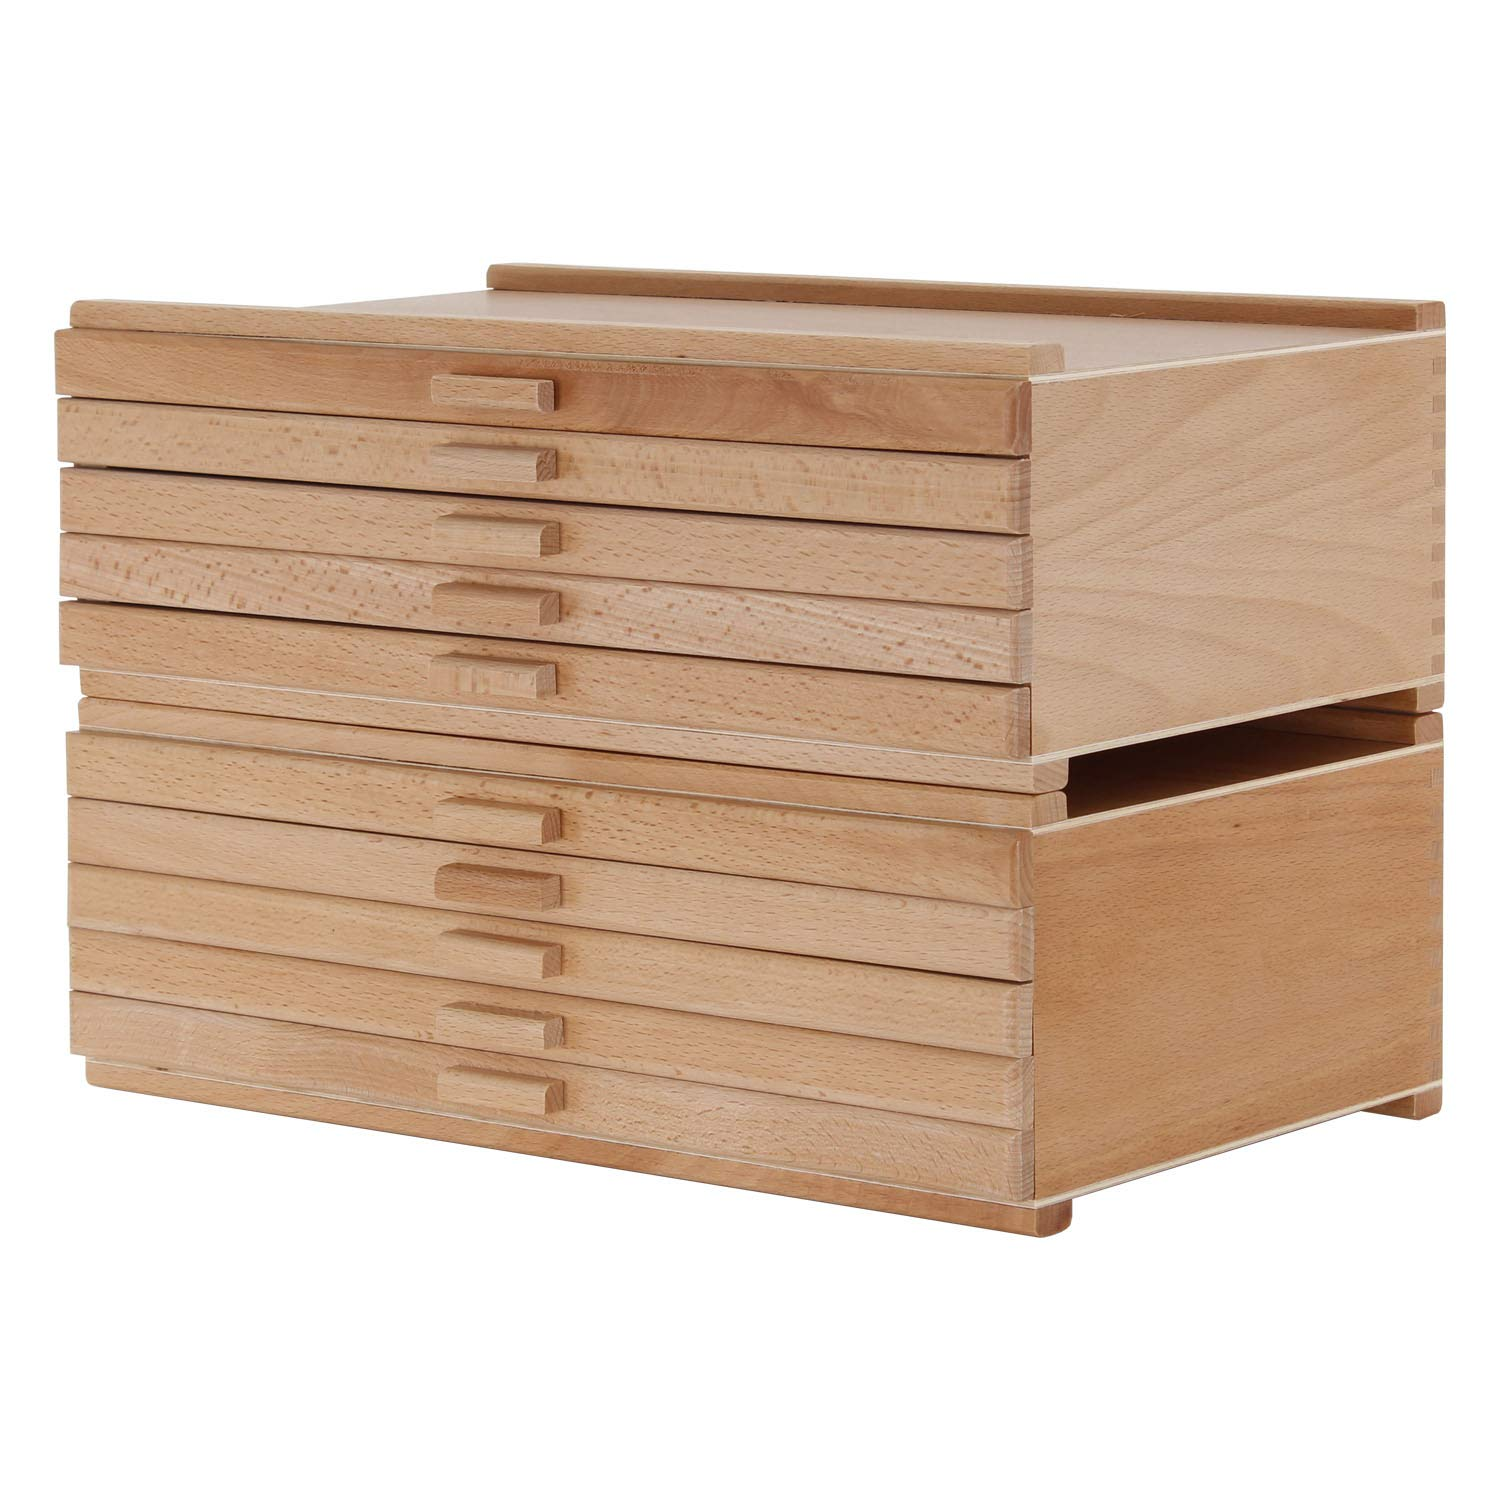 U.S. Art Supply 10 Drawer Wood Artist Supply Storage Box - Pastels, Pencils, Pens, Markers, Brushes US Art Supply WB-430